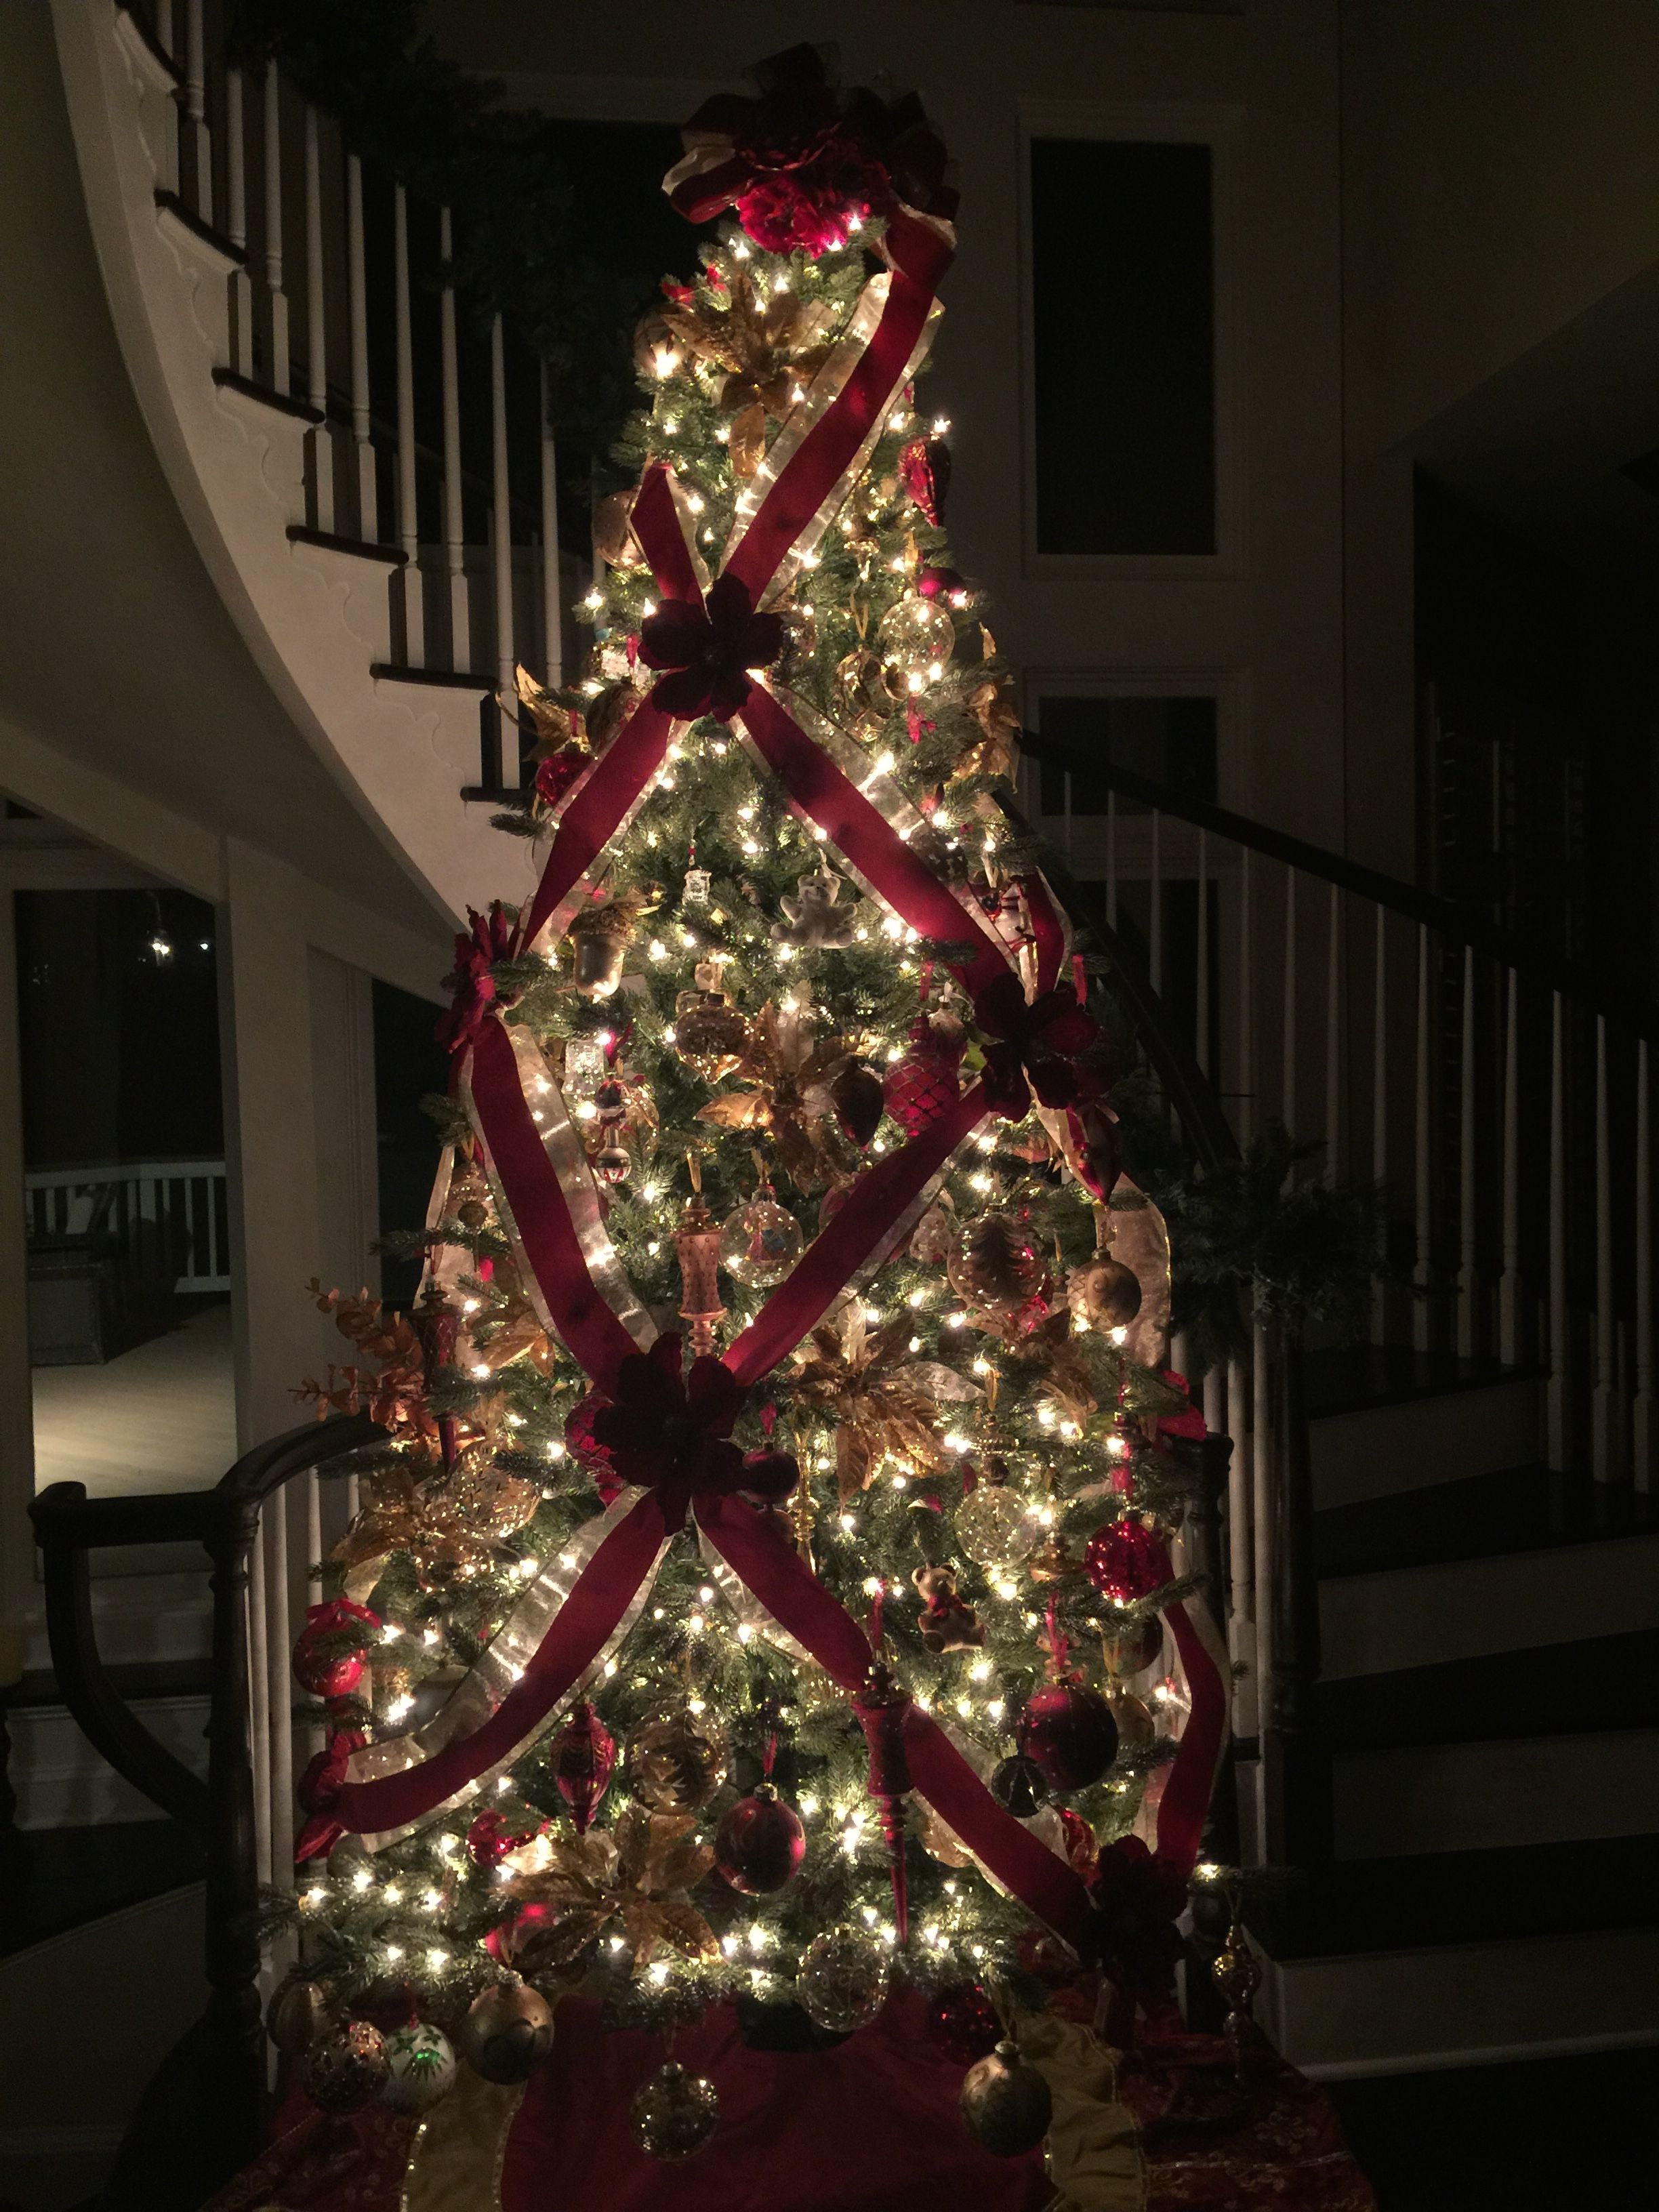 criss cross ribbon wrapping on 10 foot christmas tree - How To Decorate A 10 Foot Christmas Tree